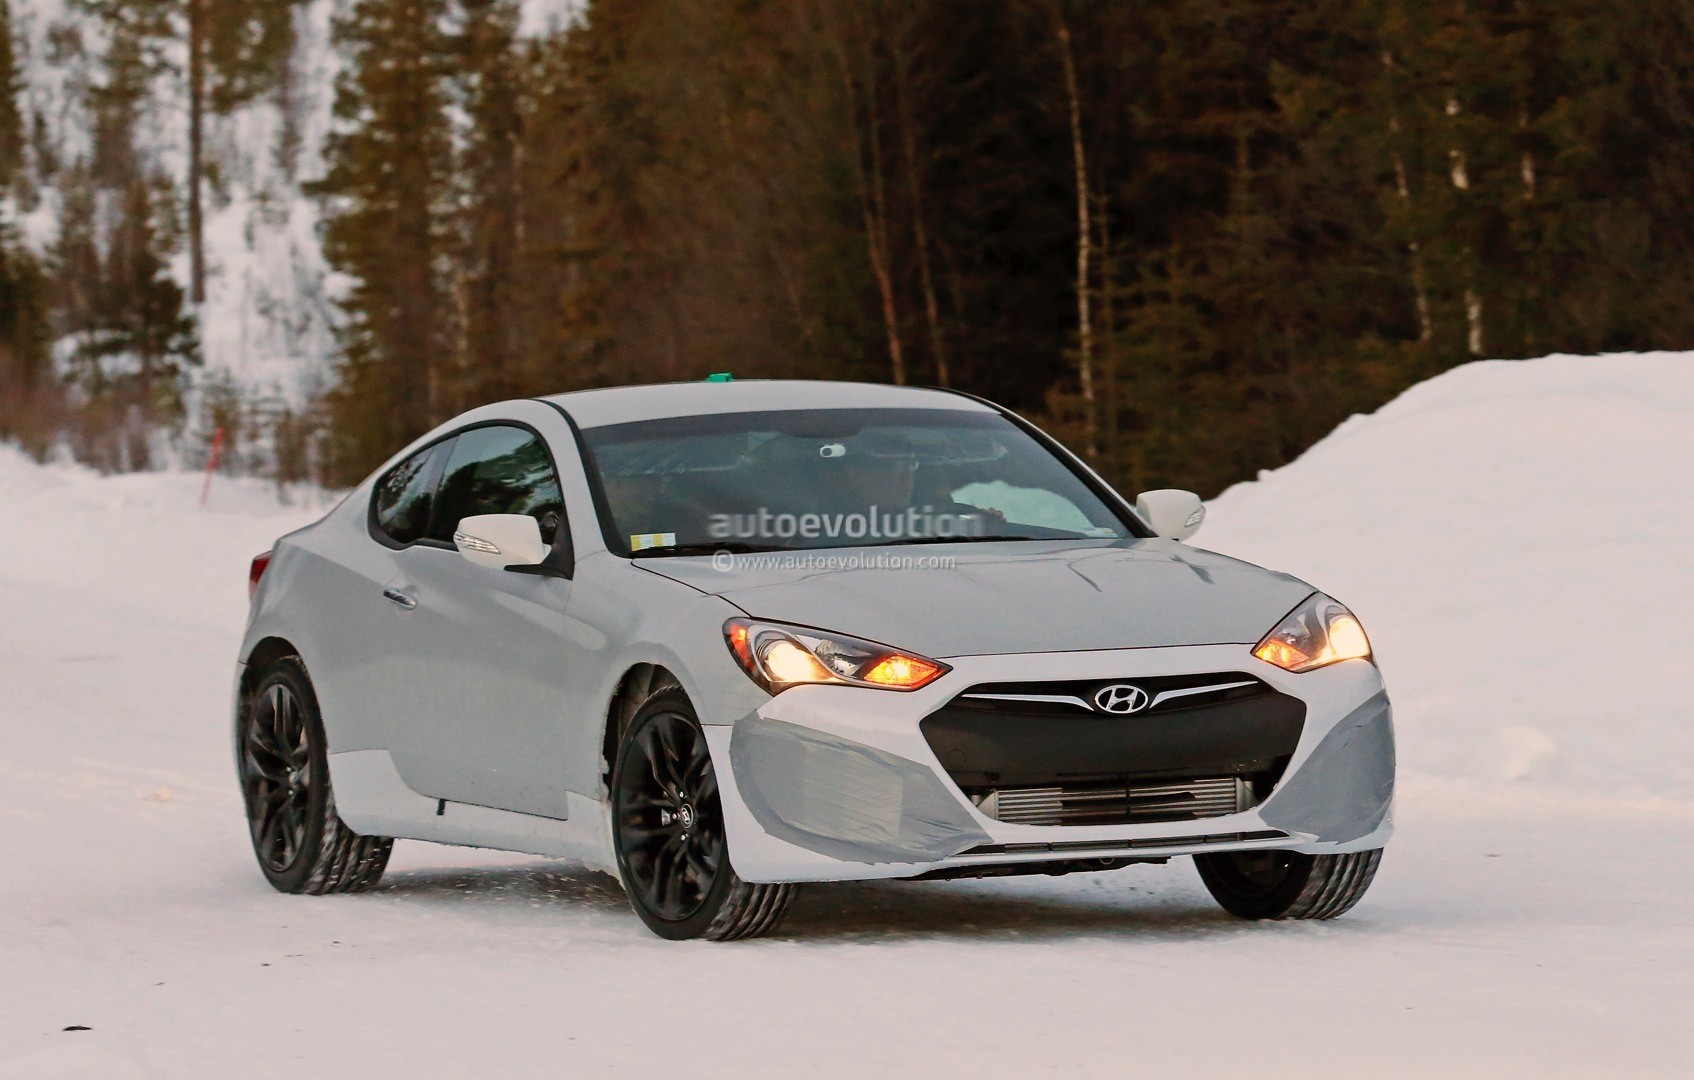 spyshots 2017 hyundai genesis coupe mule starts winter testing is expected to get v8. Black Bedroom Furniture Sets. Home Design Ideas